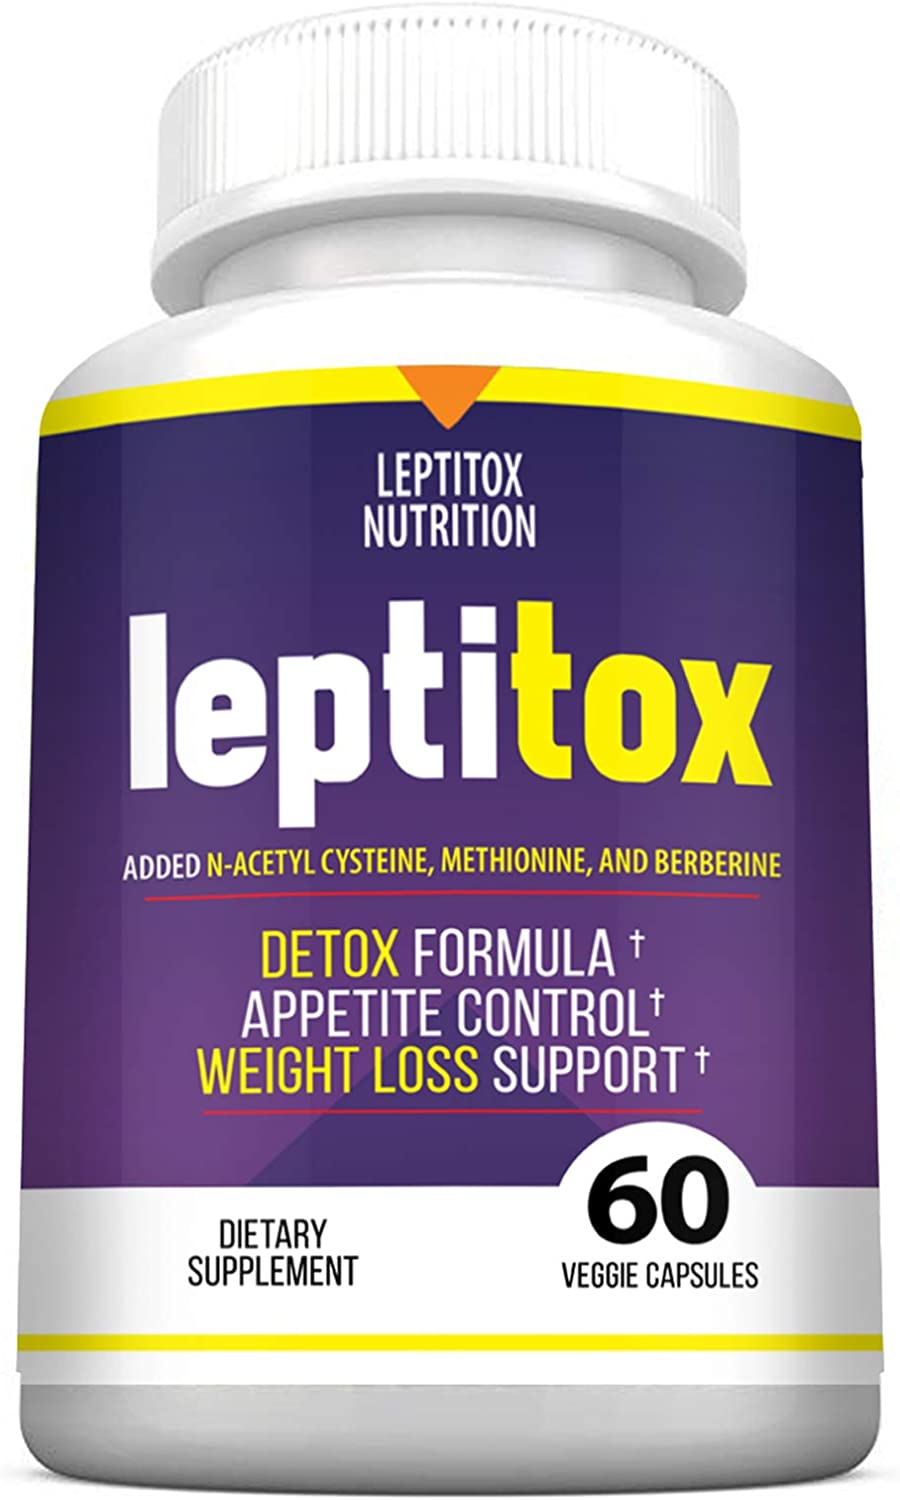 Price Black Friday Leptitox Weight Loss